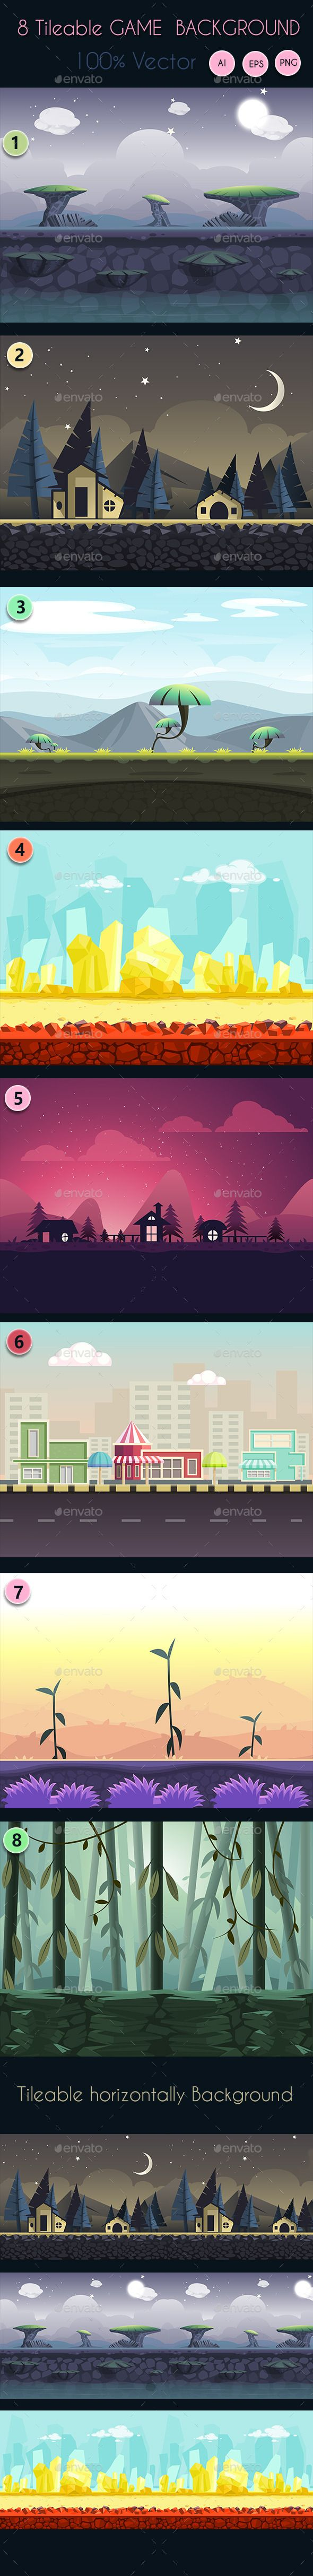 8 Tileable Vector Game Background : You can use this background for your game application/project. It suits for game developers, or indie game developers who want to make looping GUI cartoon game for Android or iOS Buy Now : http://graphicriver.net/item/8-tileable-vector-game-background/9226483?ref=graphicon